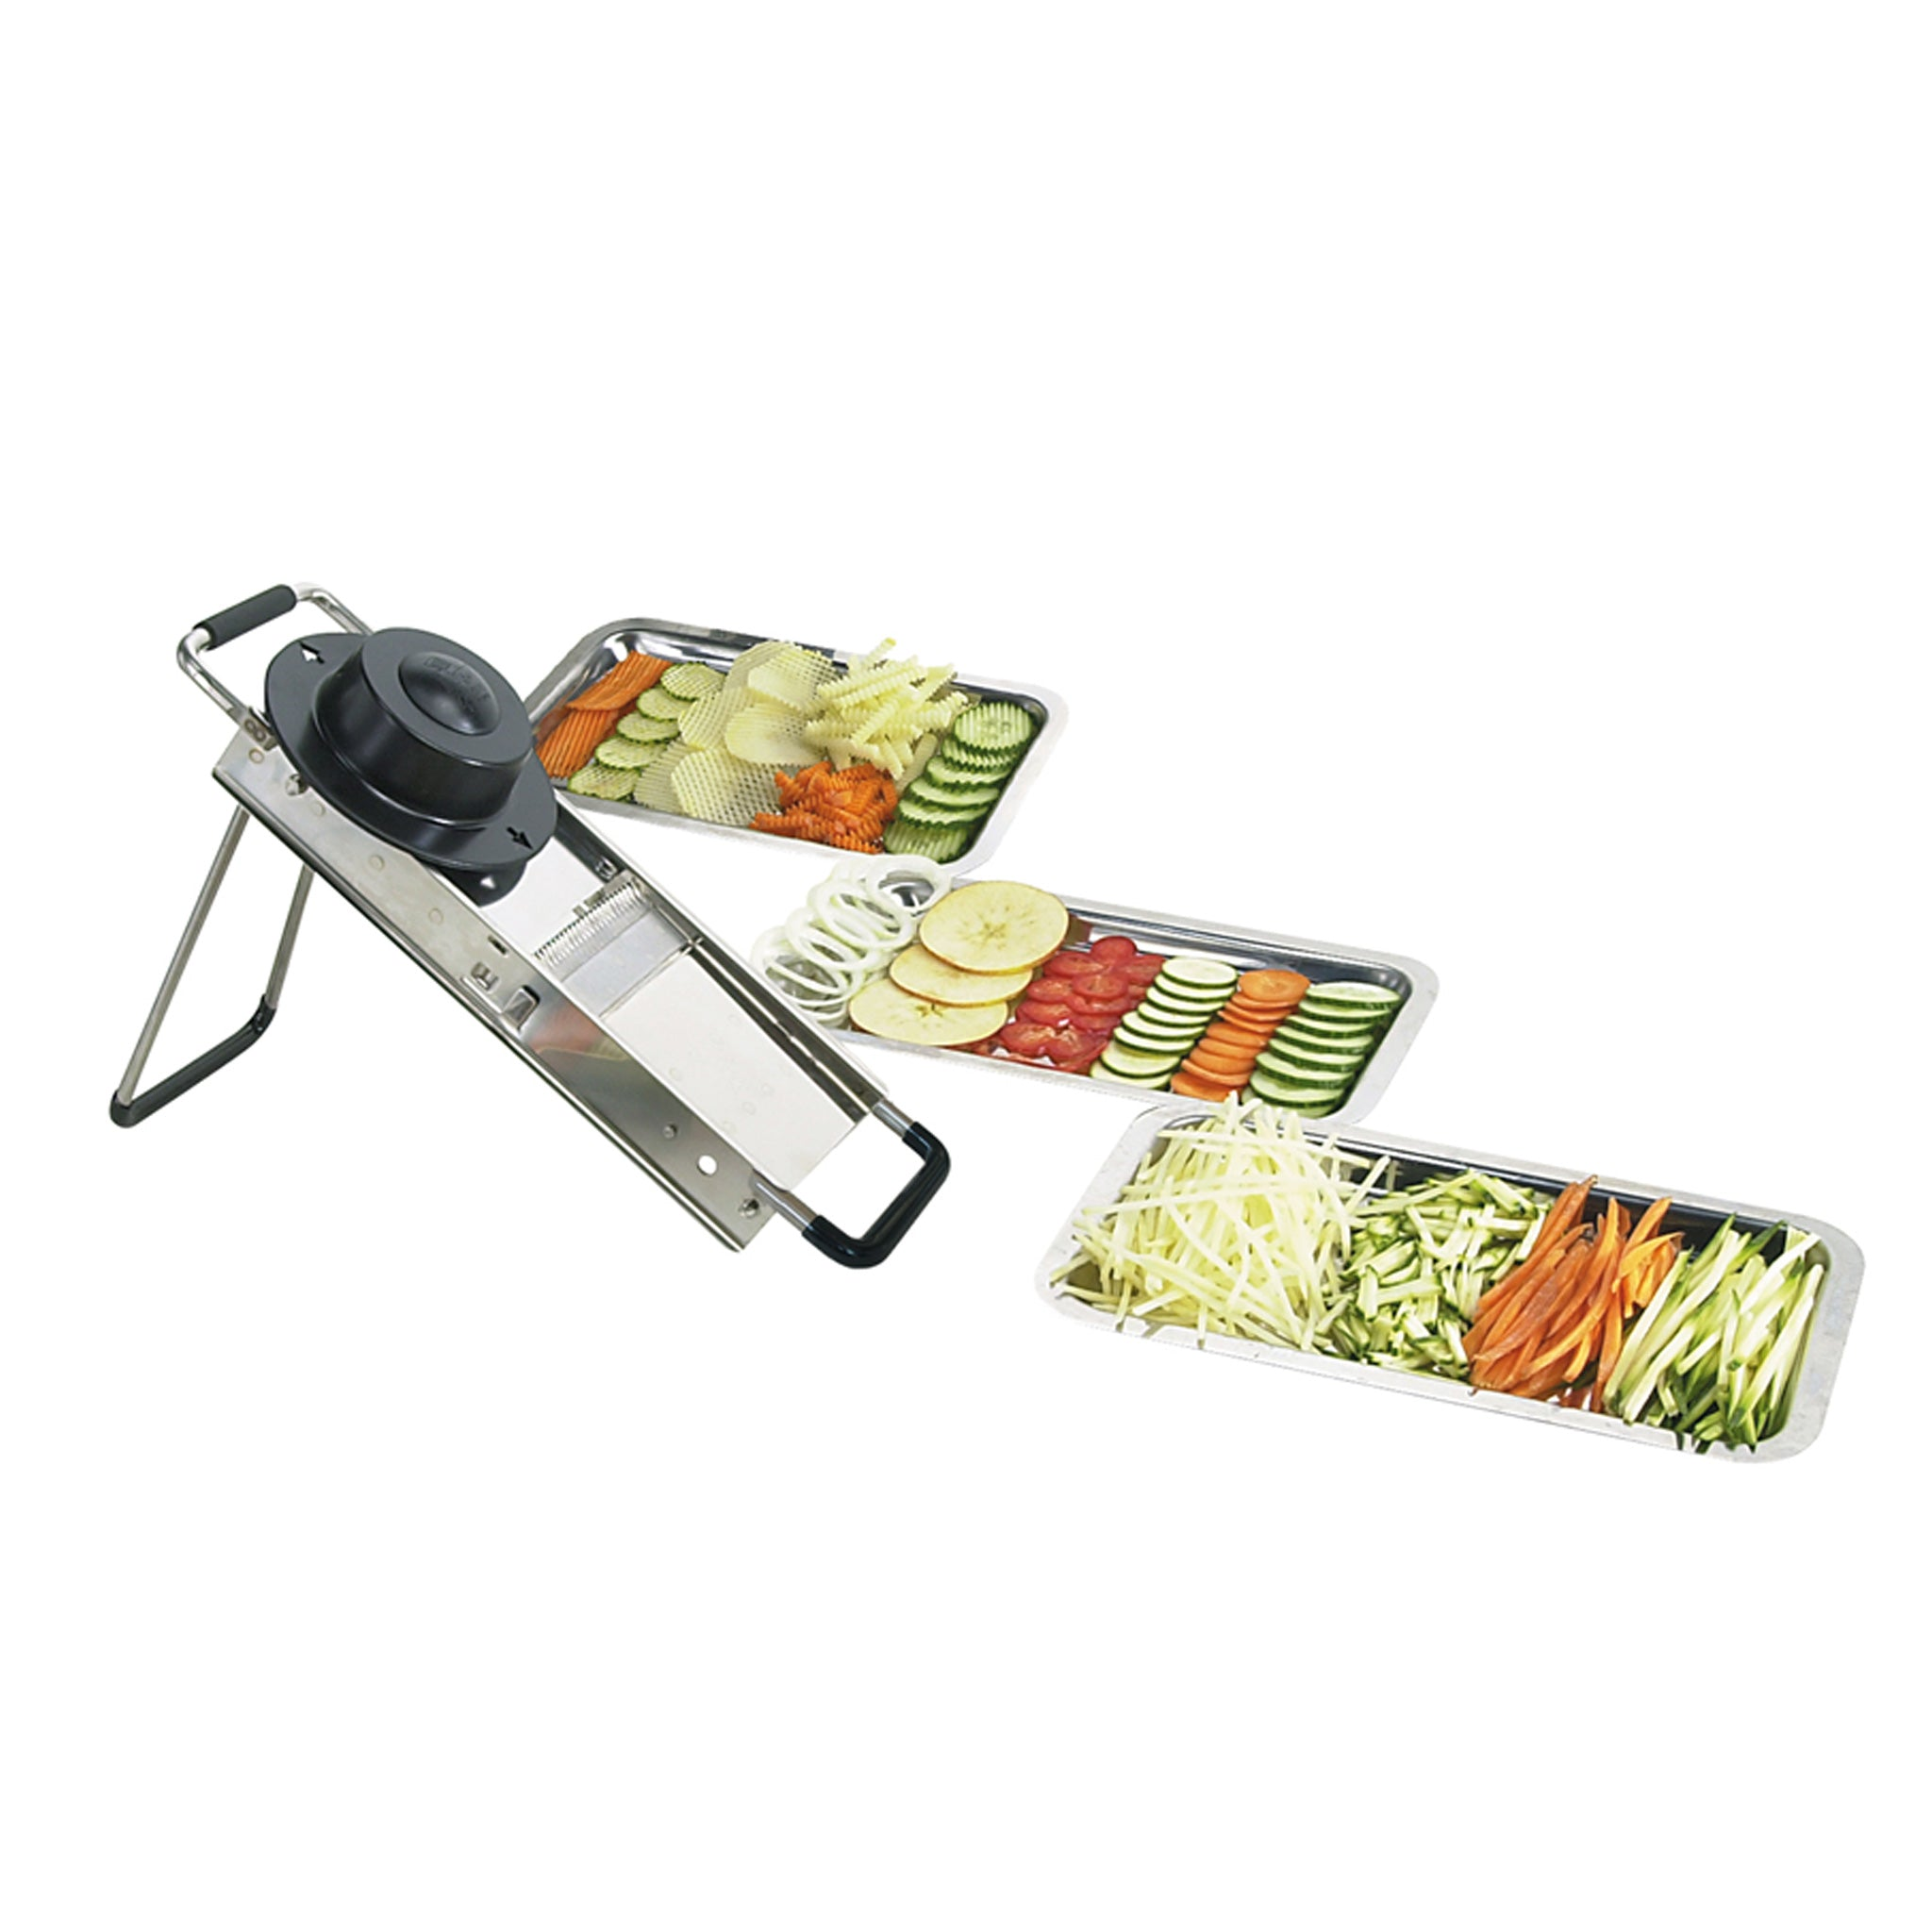 "Bron-Coucke 15000 ""The Chef"" Mandoline Slicer - Tribest"